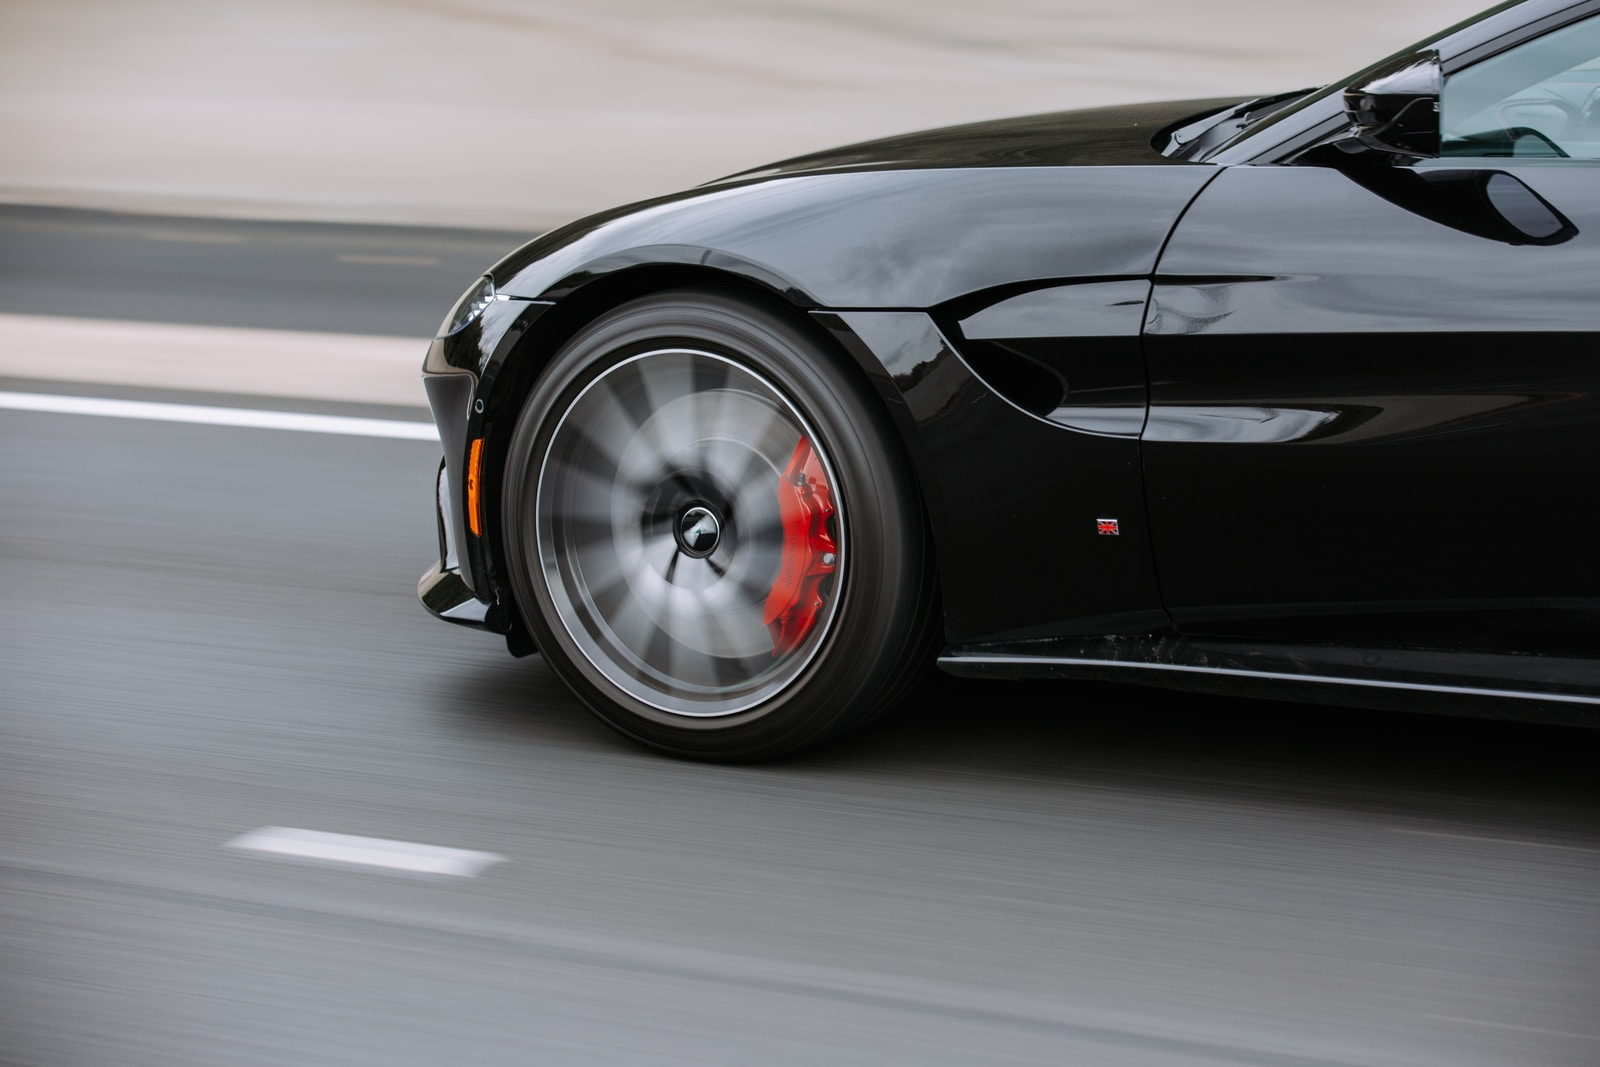 black coupe on road going fast